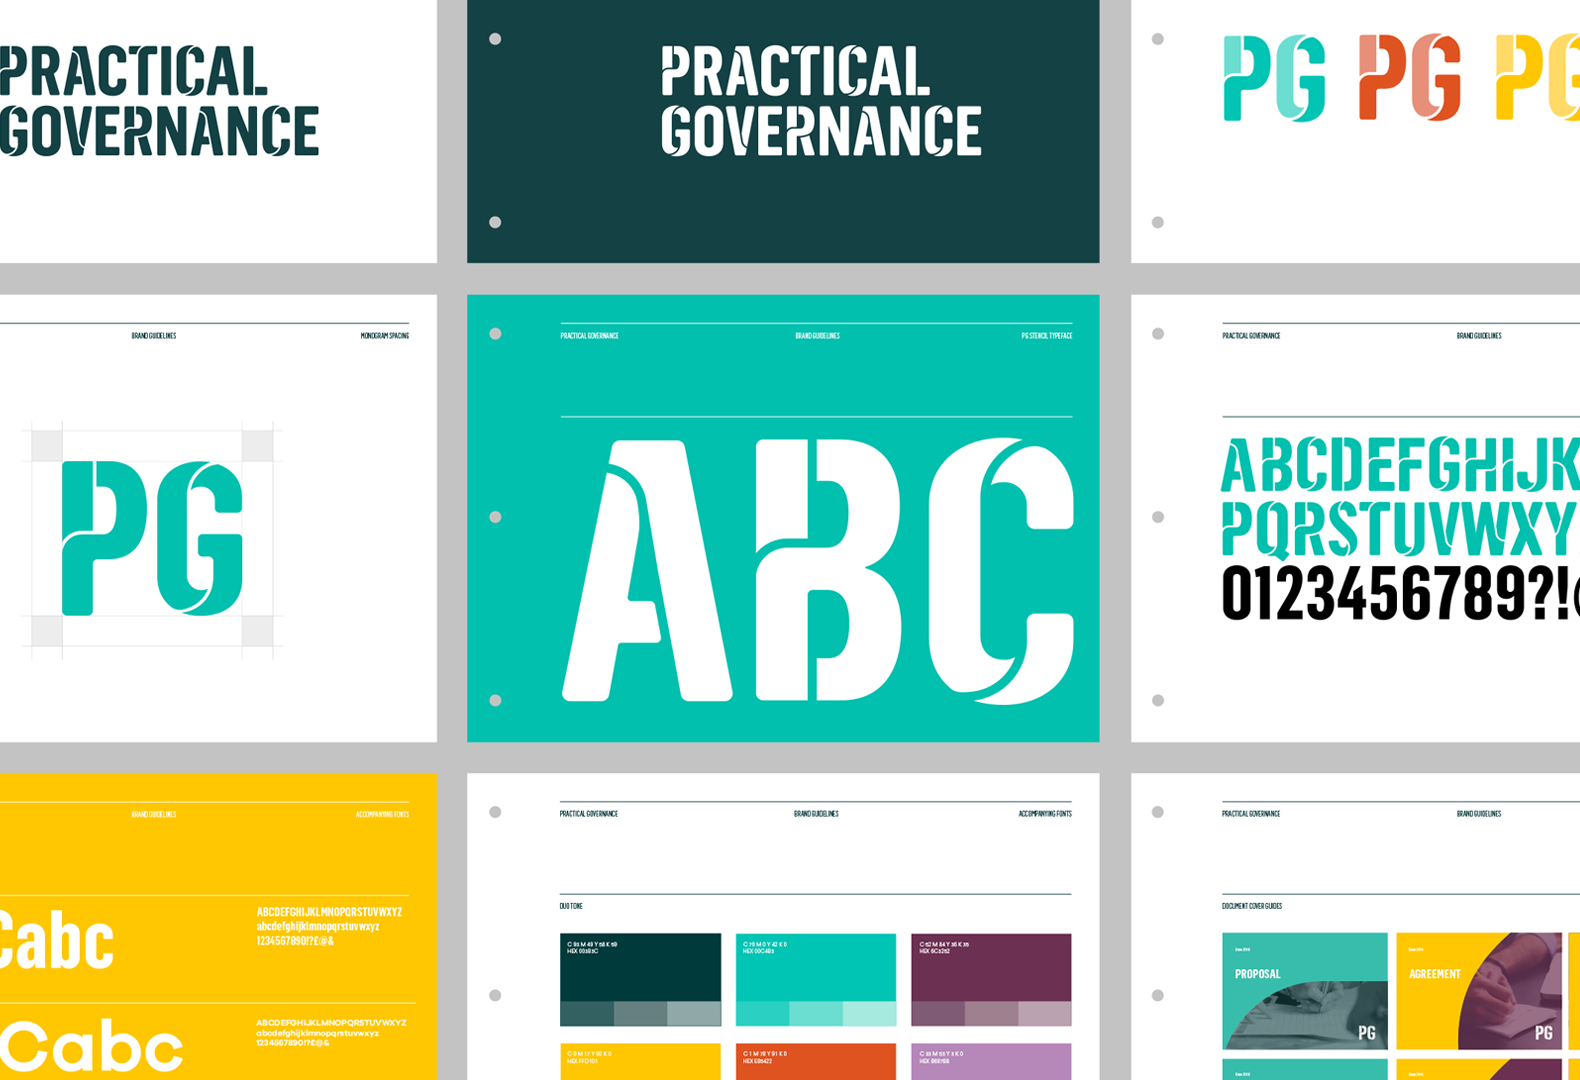 Practical Governance brand guidelines.